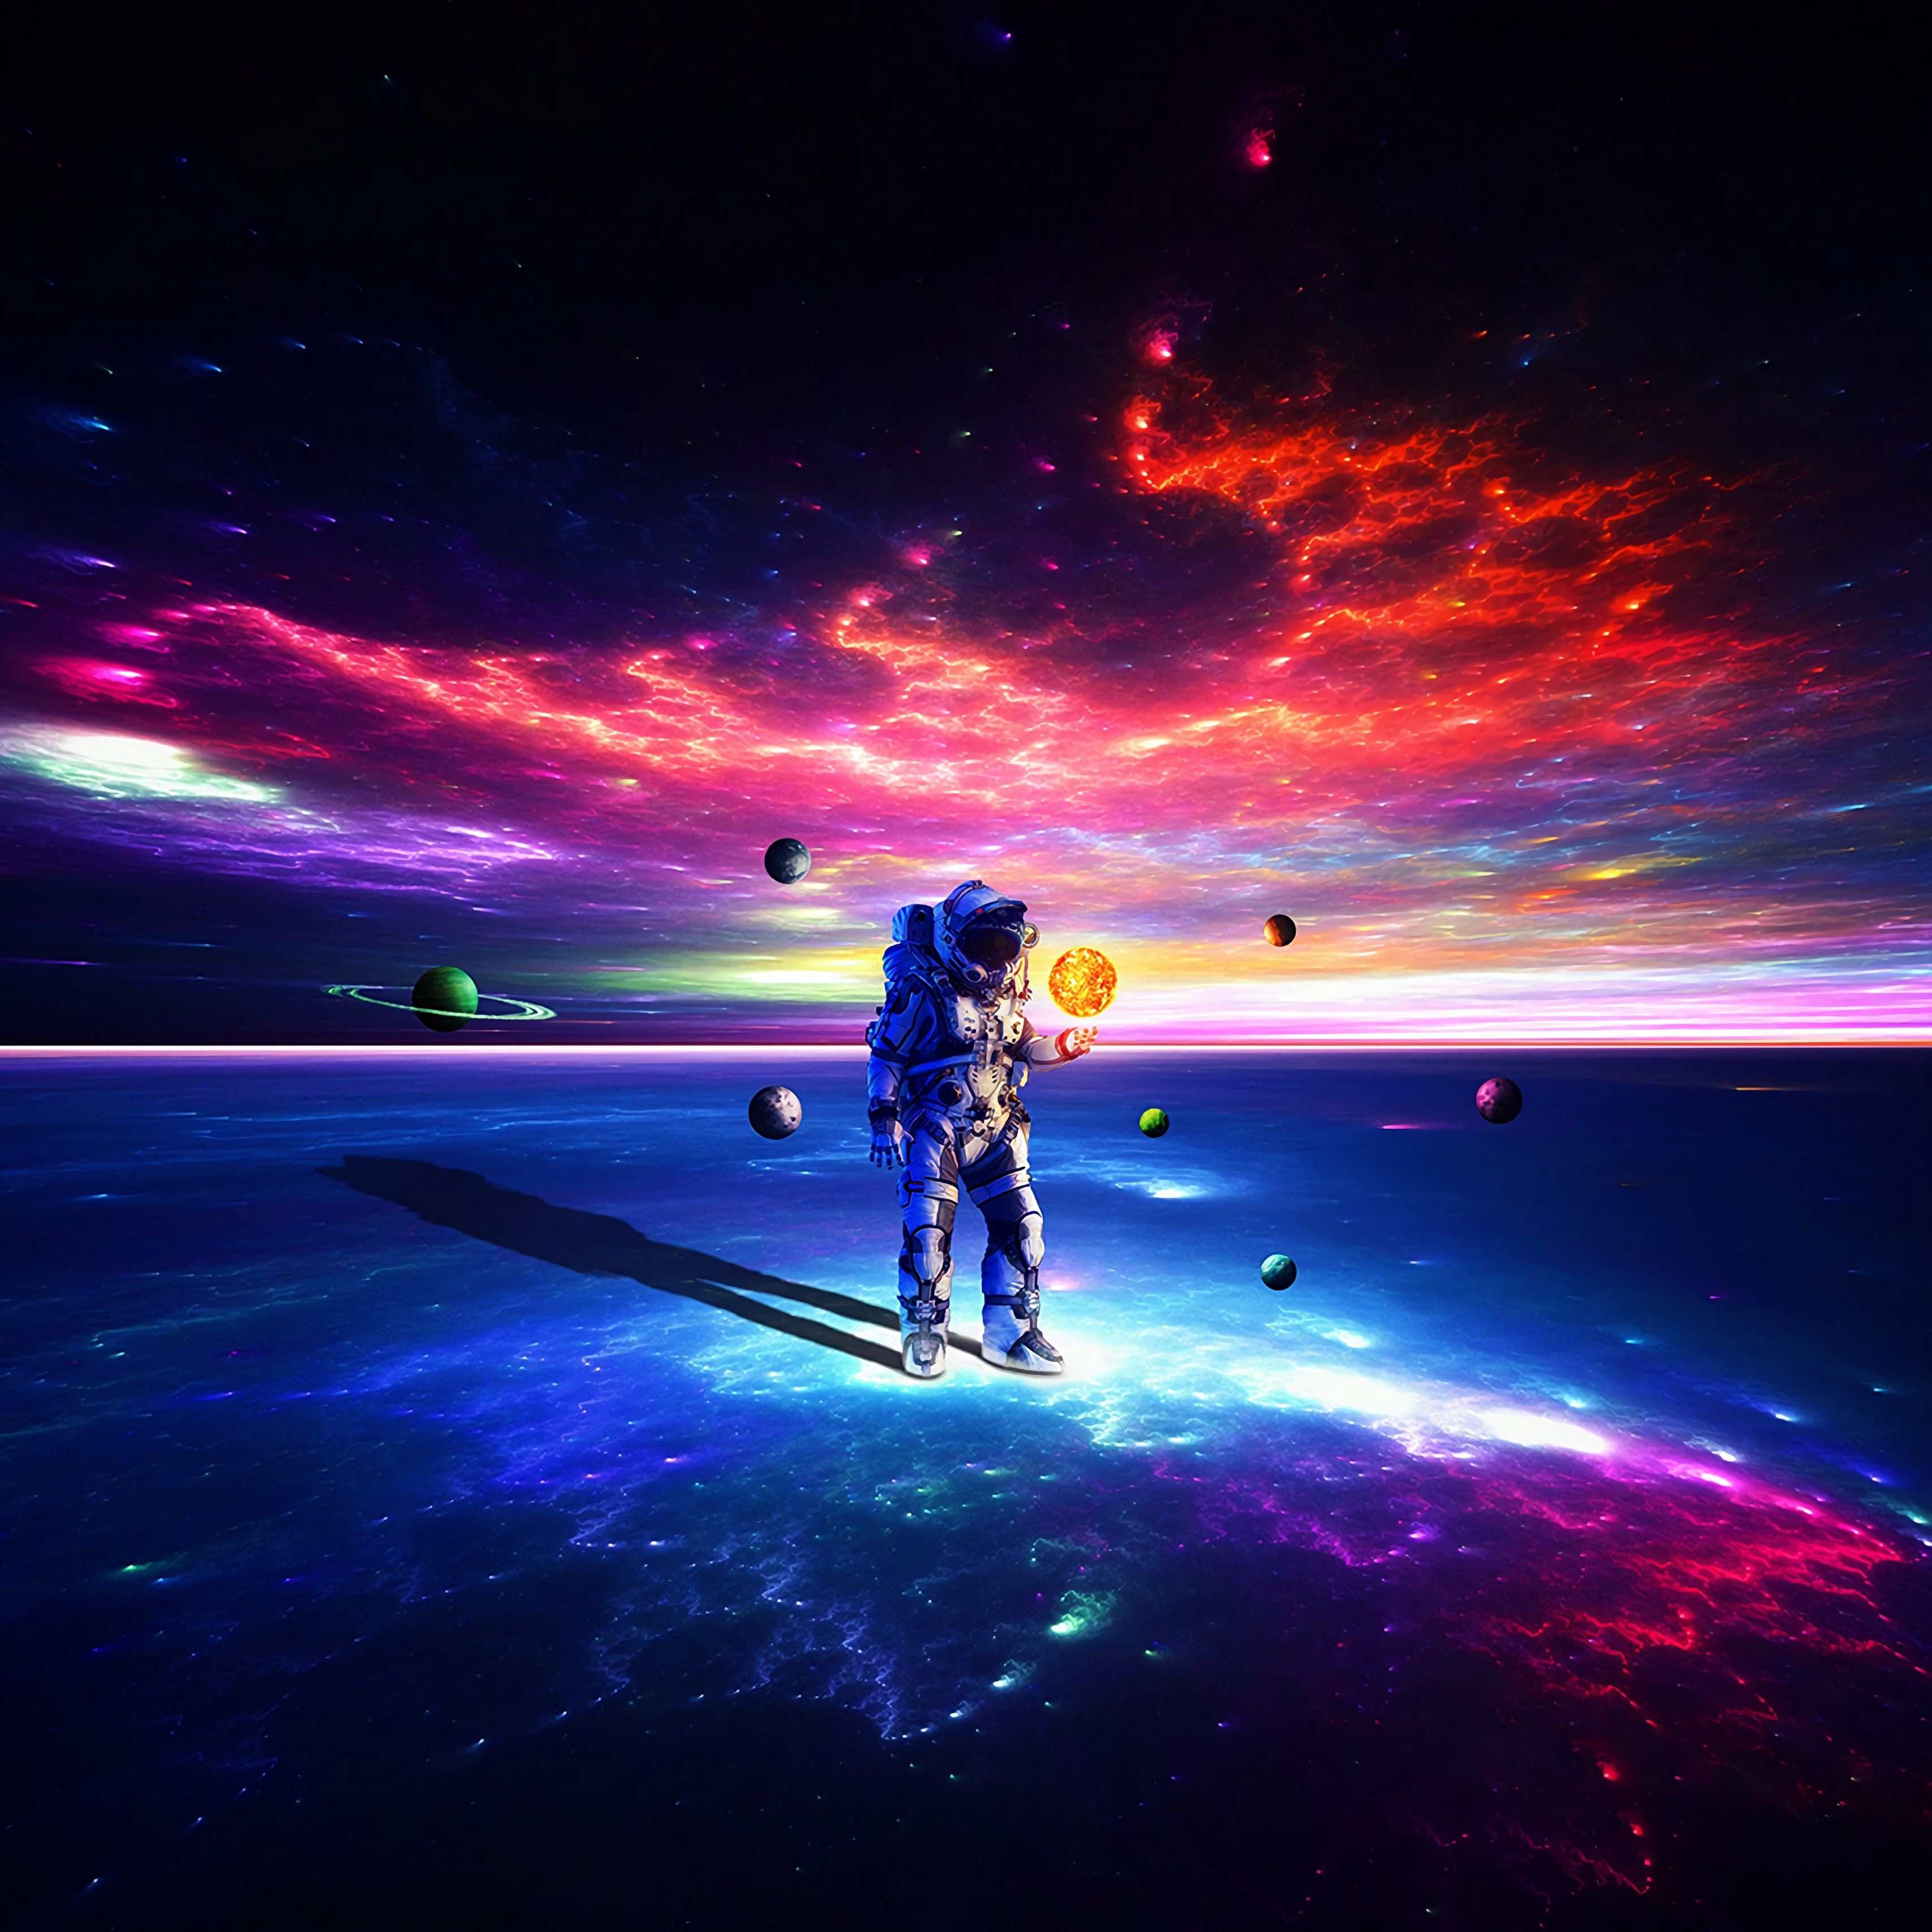 Astronaut Space Screensaver Anime Wallpapers Wallpaper Cave